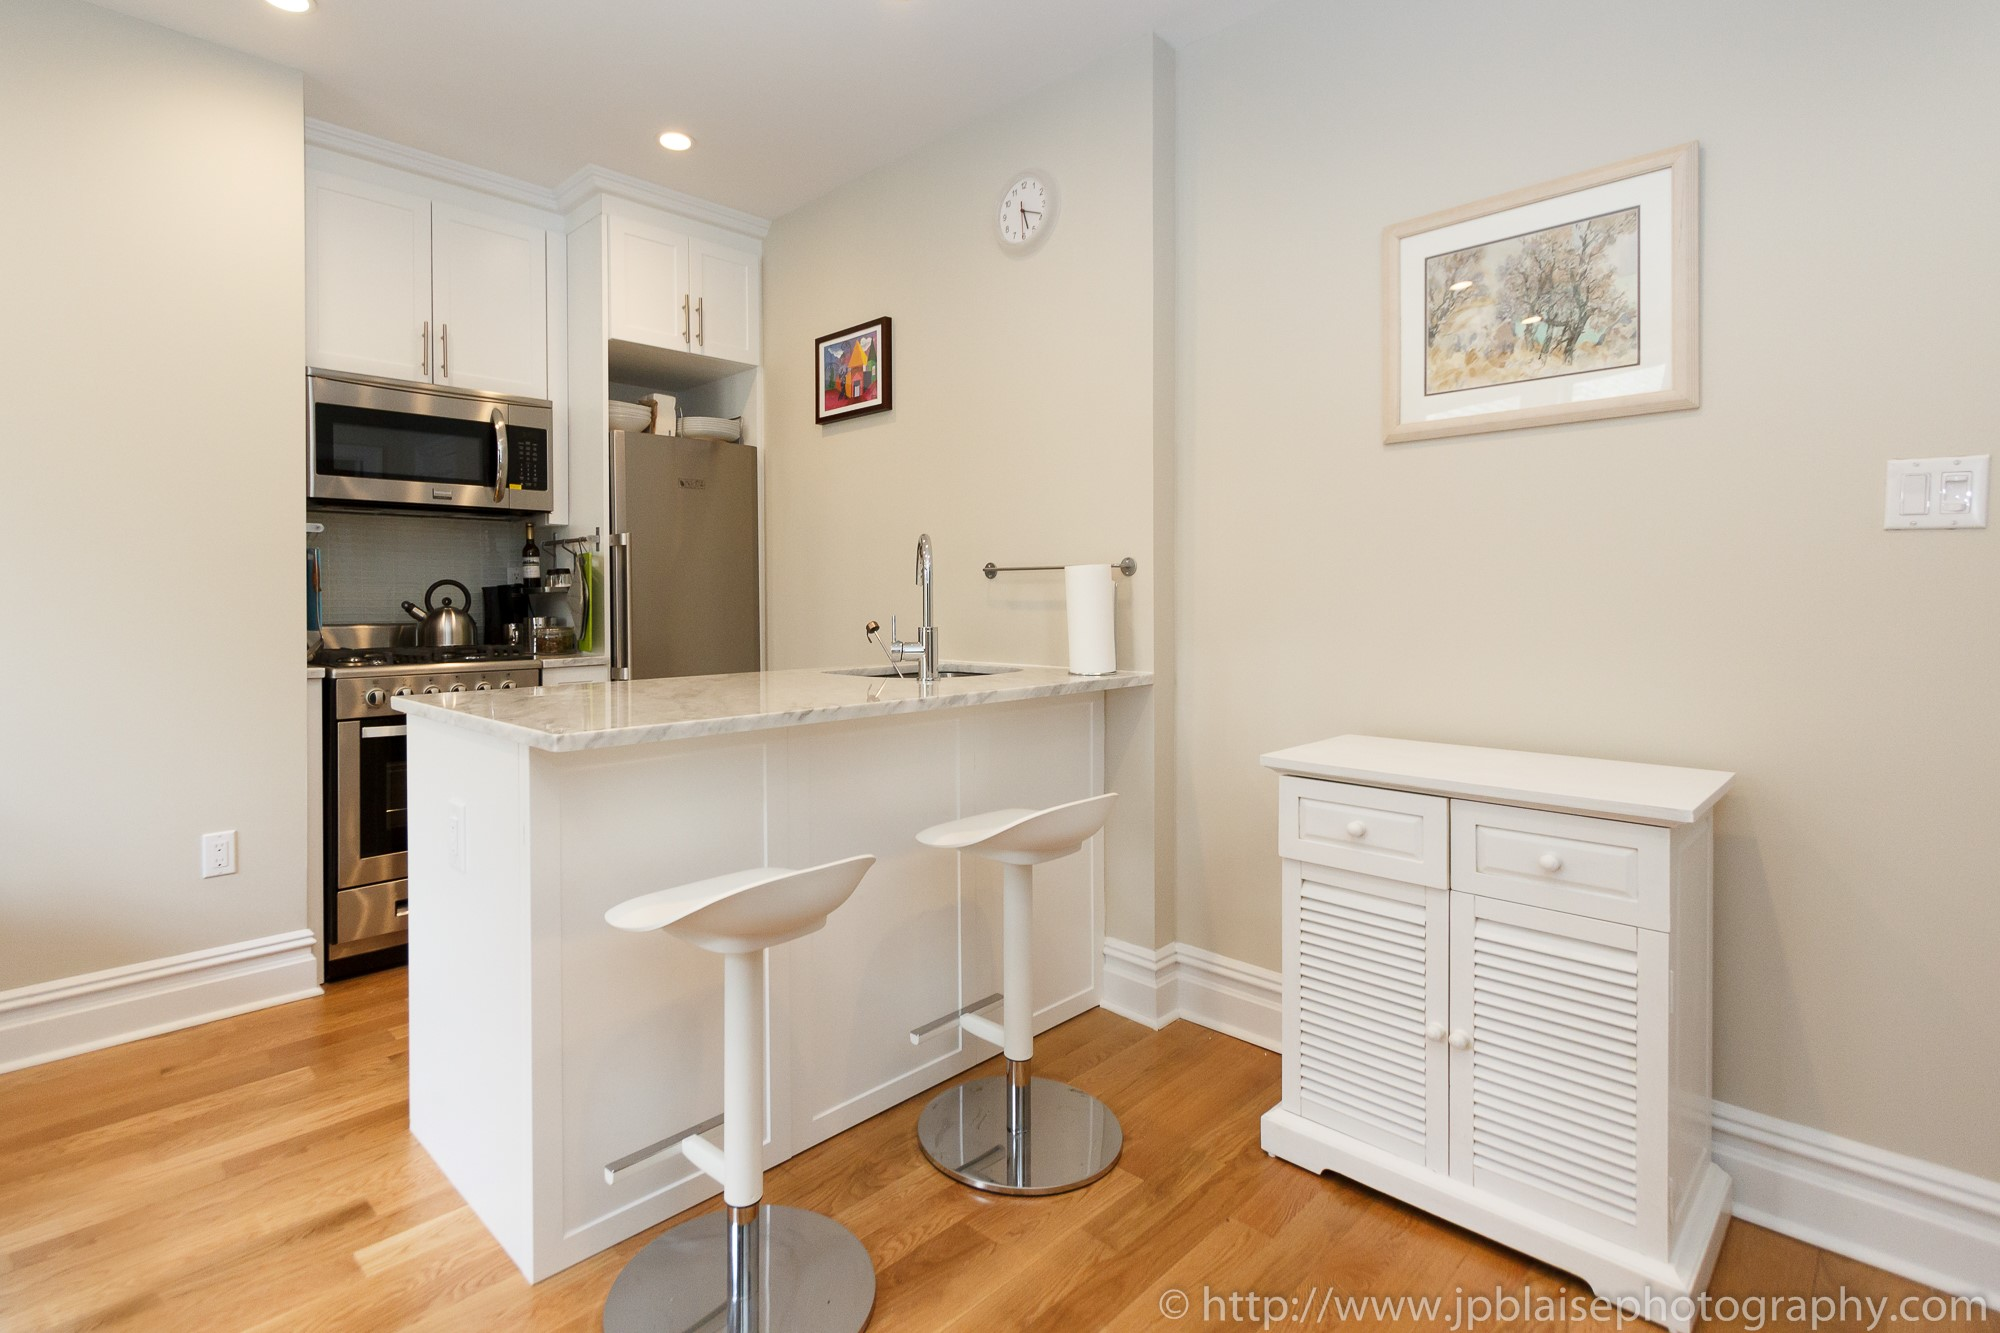 Real Estate photographer nyc one bedroom apartment in washington heights manhattan new york kitchen